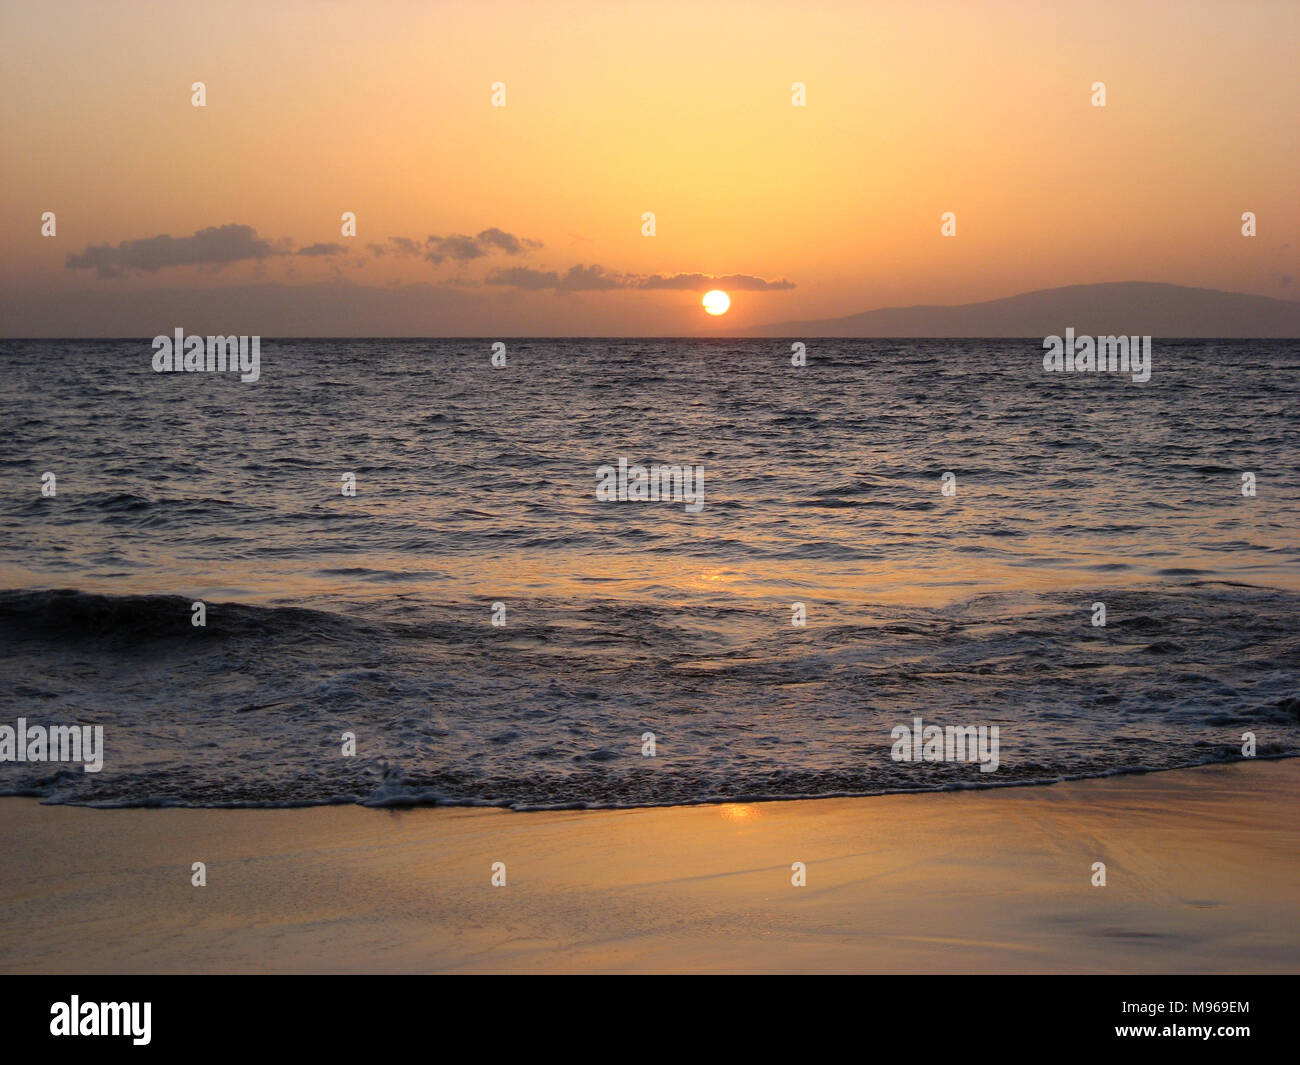 Sunset in Maui over the Pacific Ocean - Stock Image